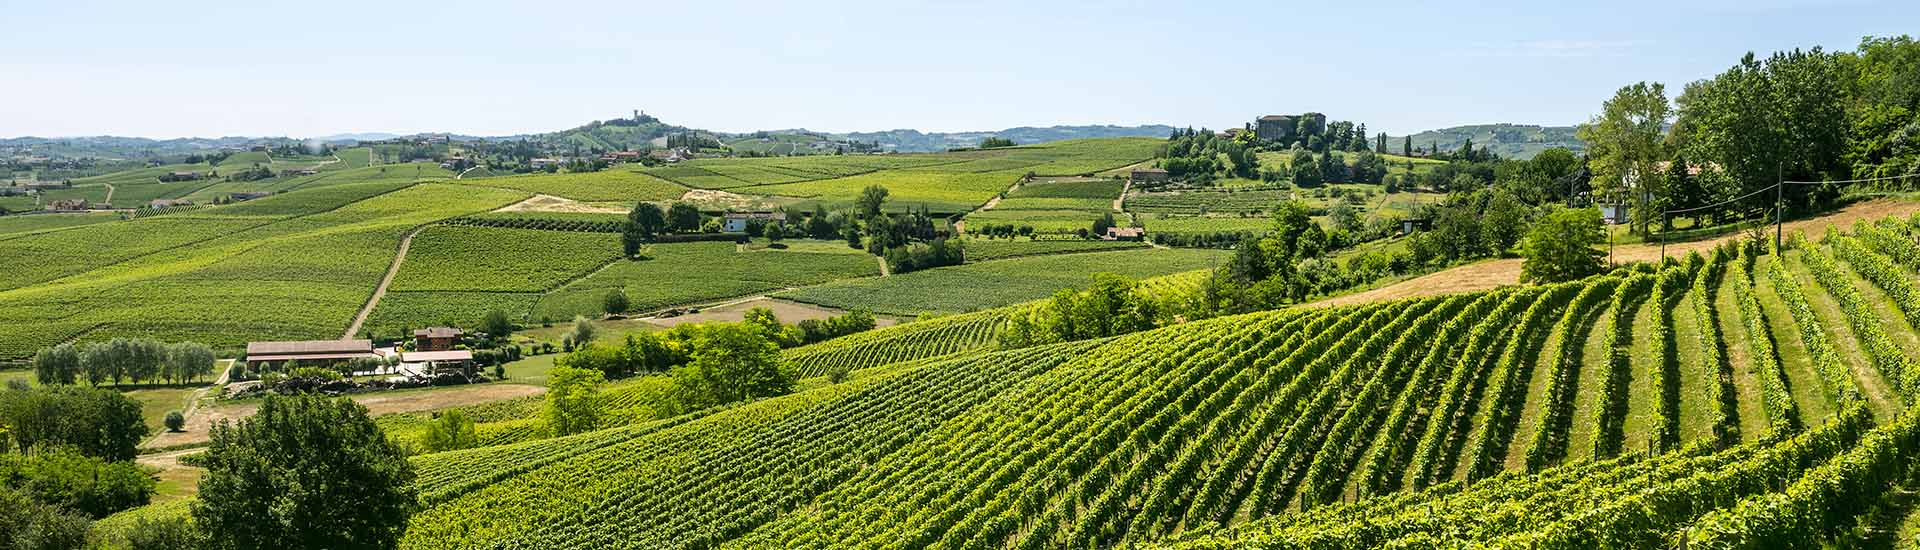 Langhe (Asti, Cuneo, Piedmont, Italy) - Landscape at summer with vineyards